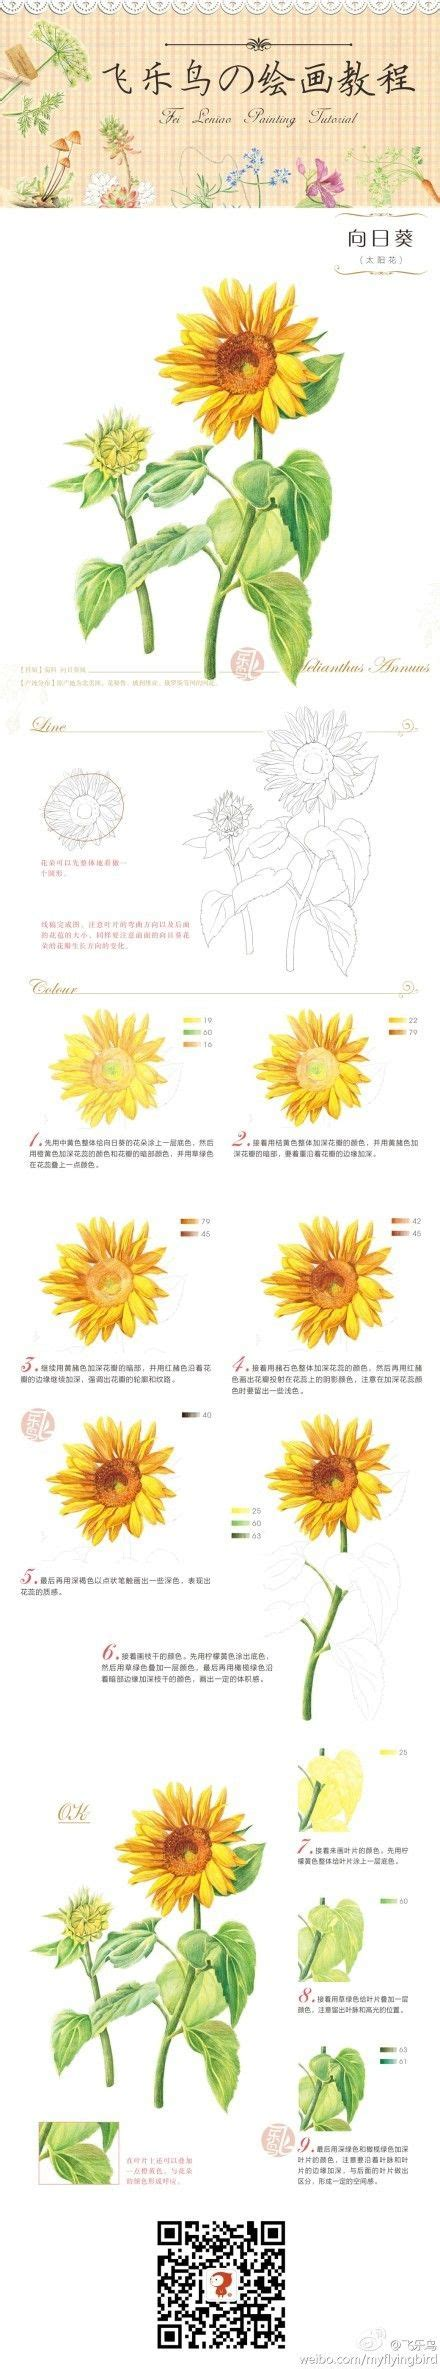 watercolor tutorial sunflowers how to draw and paint a sunflower sketch pinterest